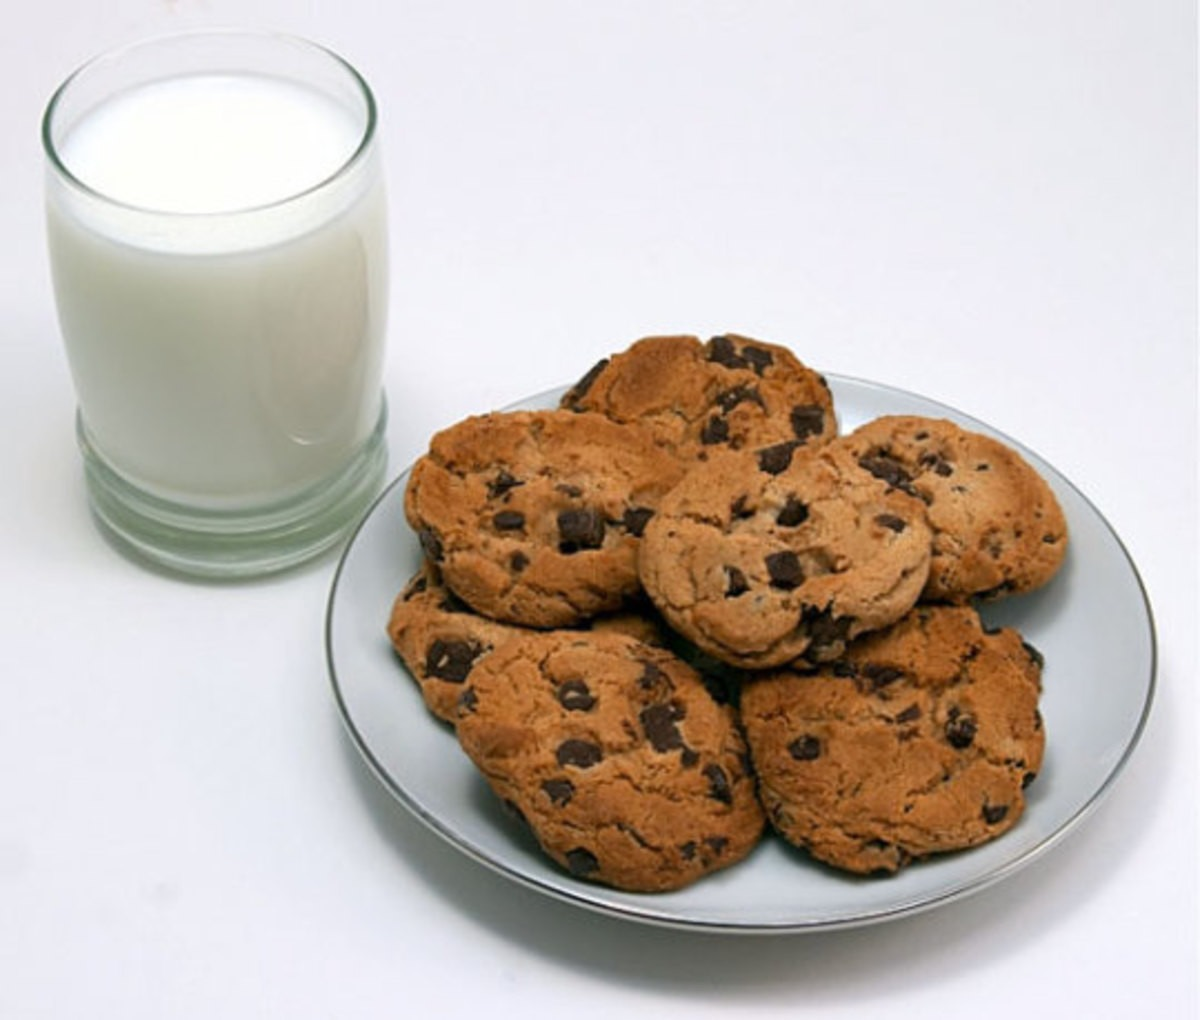 Comrades Keep An Eye On My Milk And Cookies I Will Be Back Later